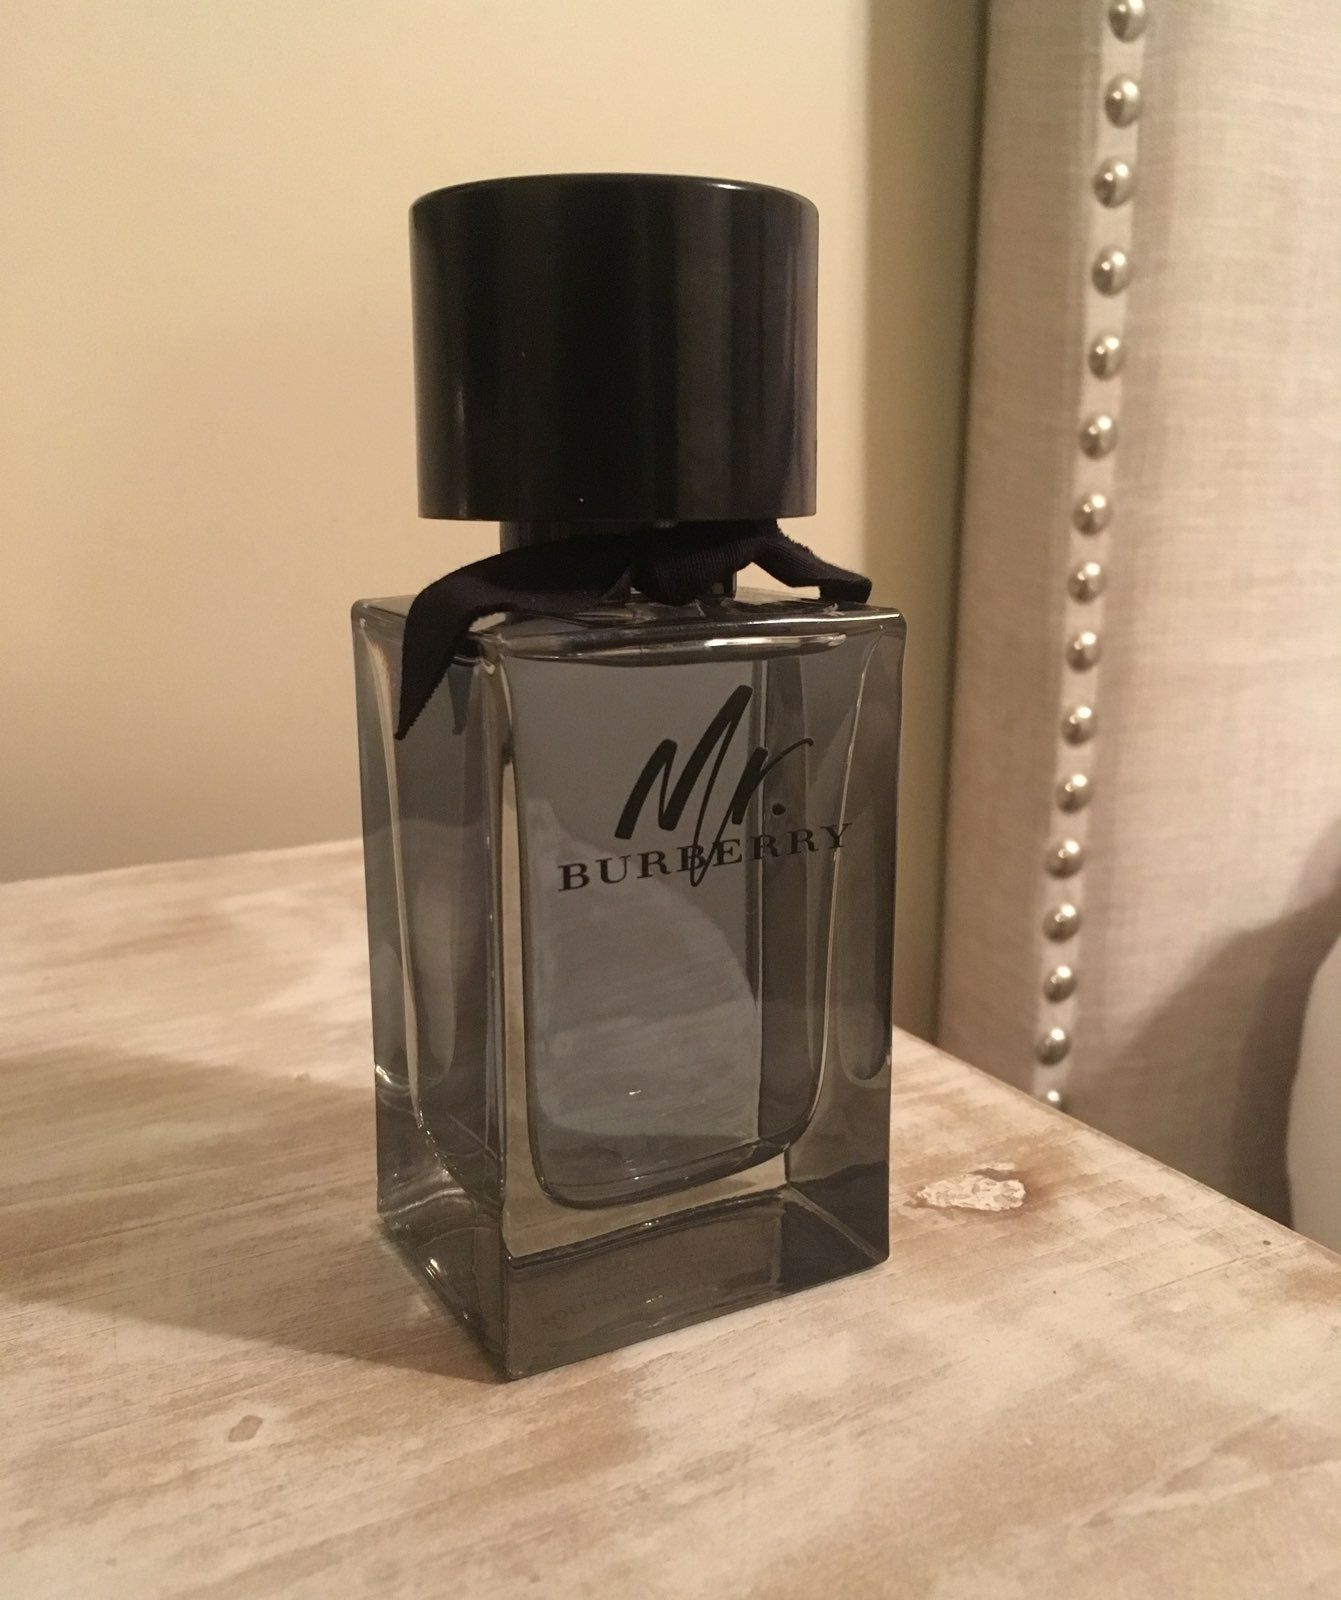 Sprayed Twice Message Me If You Have Any Questions Prior To Purchasing Perfume Bottles This Or That Questions Perfume